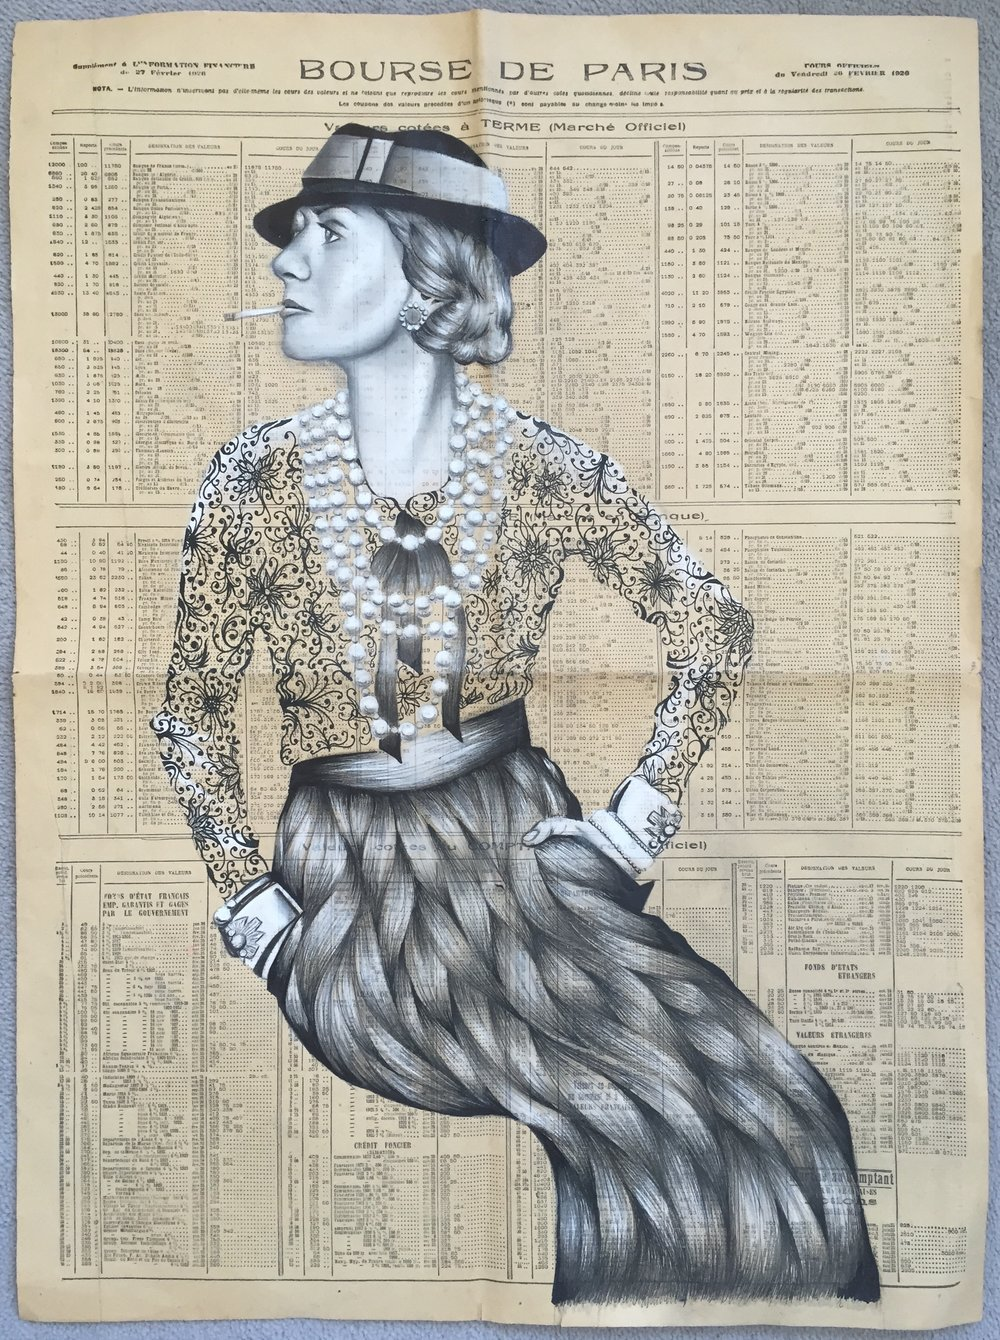 Jean-Baptiste Vincent Coco Chanel, 2016 Pencils, coloured pencils and ink on newspaper 42 x 59.4 cm